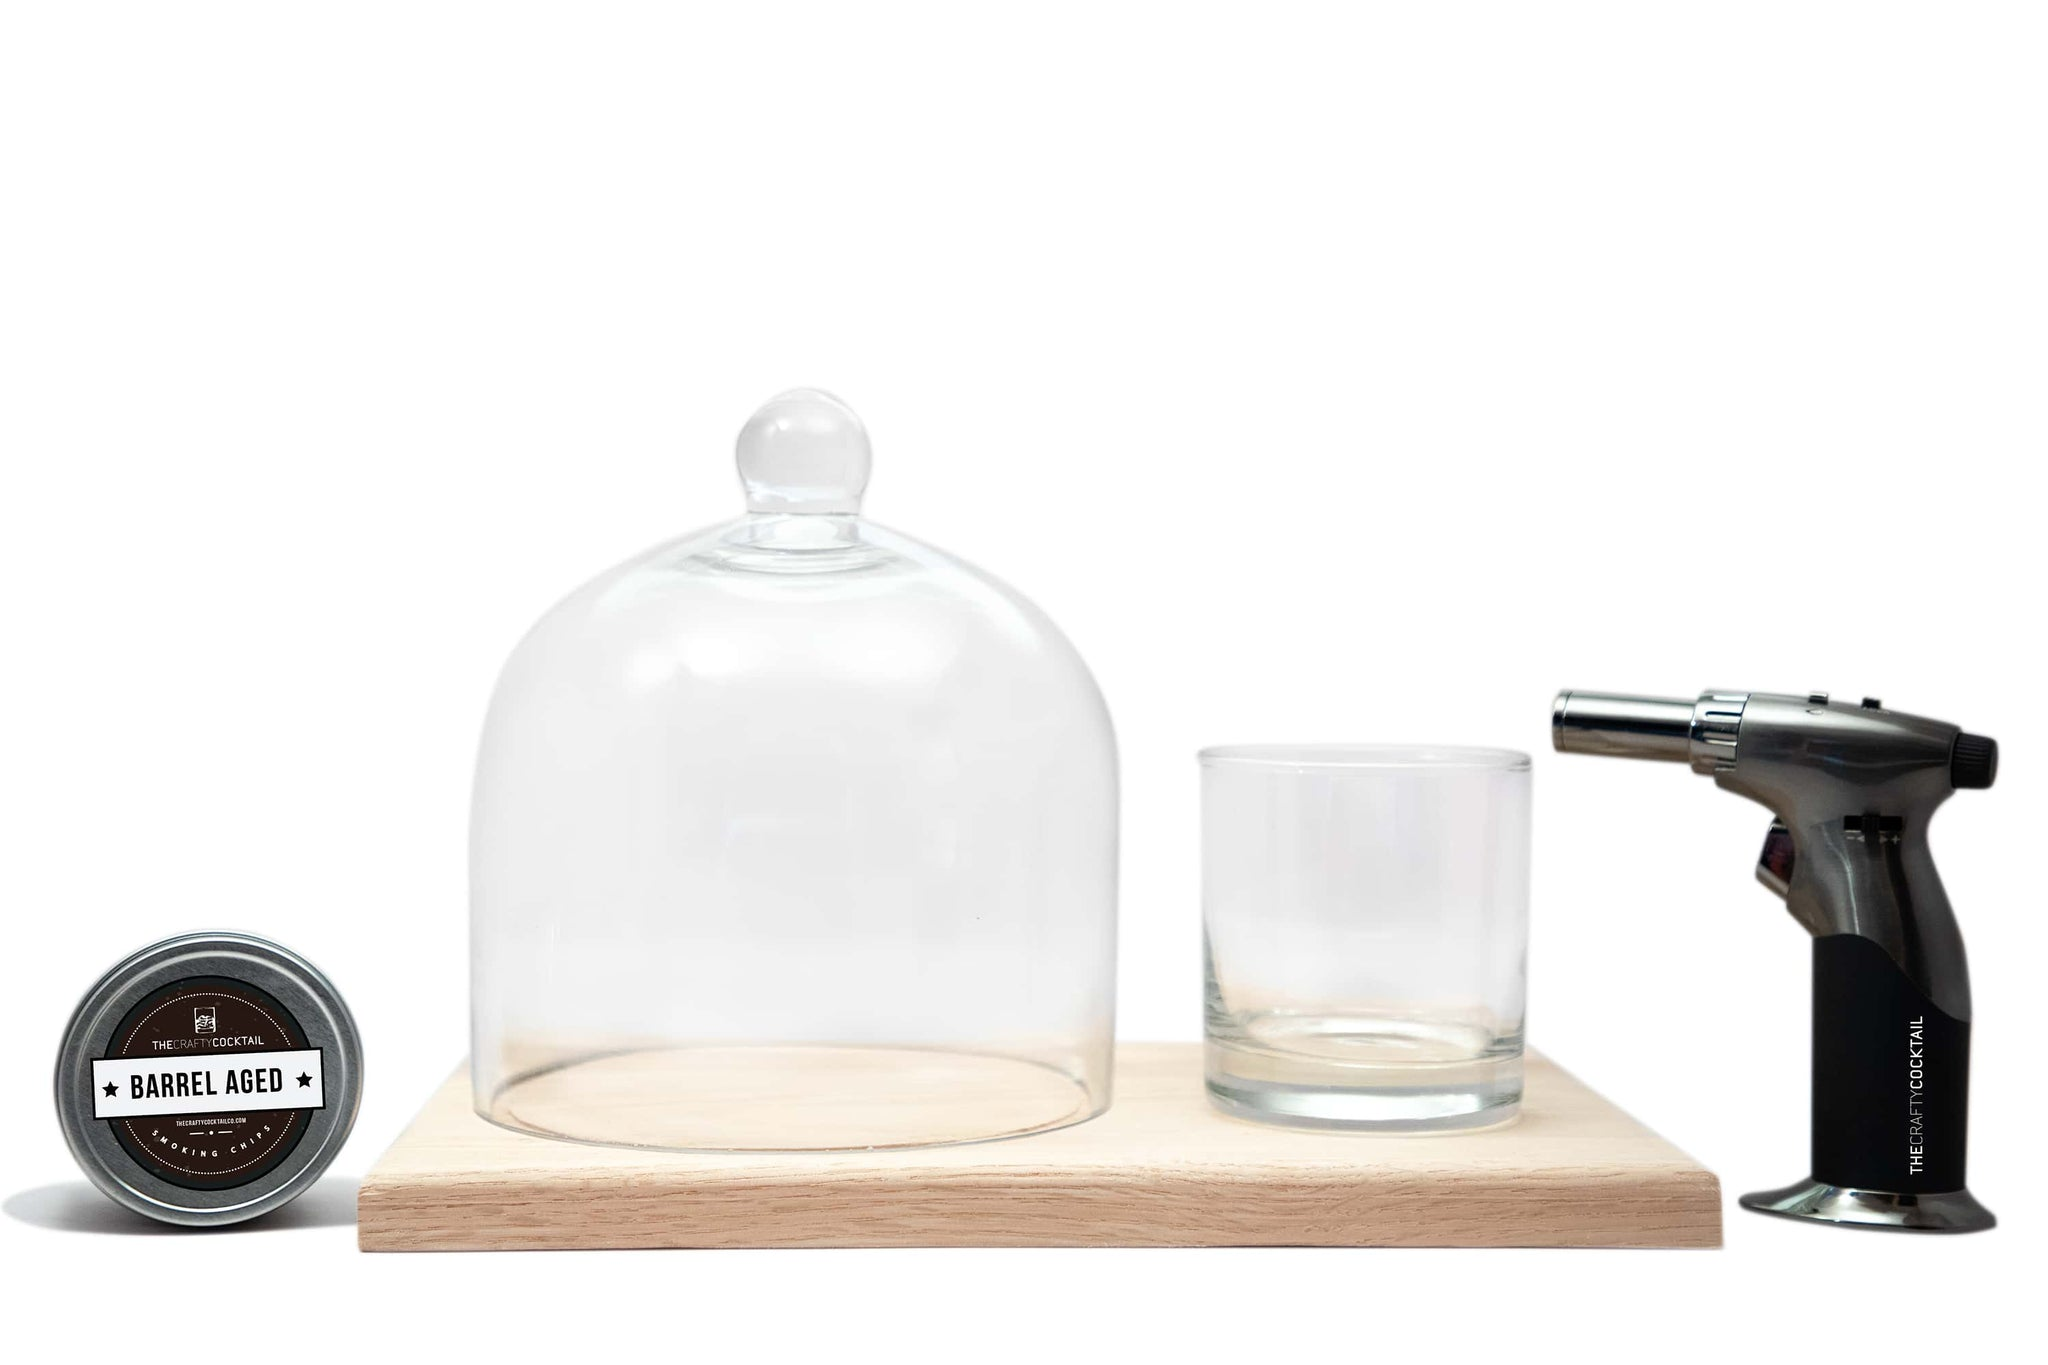 Dome Cocktail Smoking Kit - Large Wooden Base